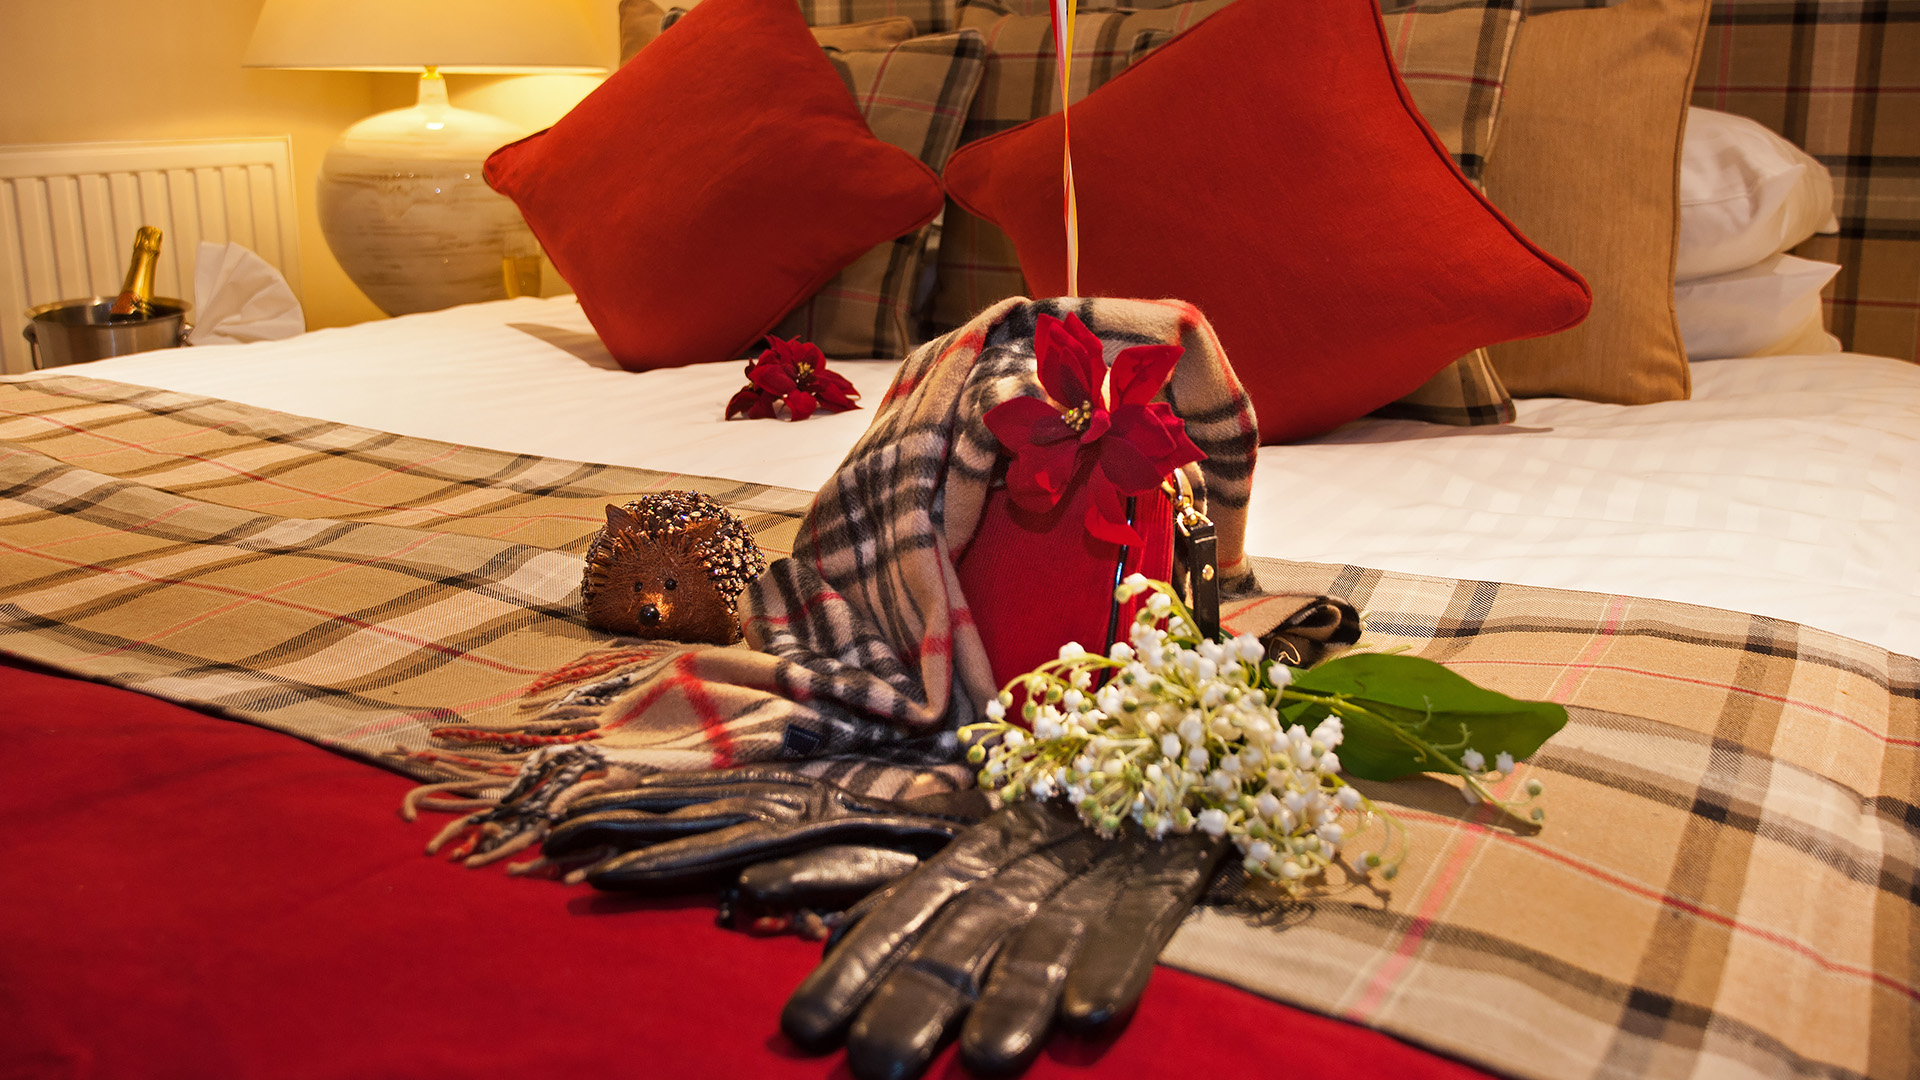 Room Detail Showing luxury trimmings to make guests feel welcome